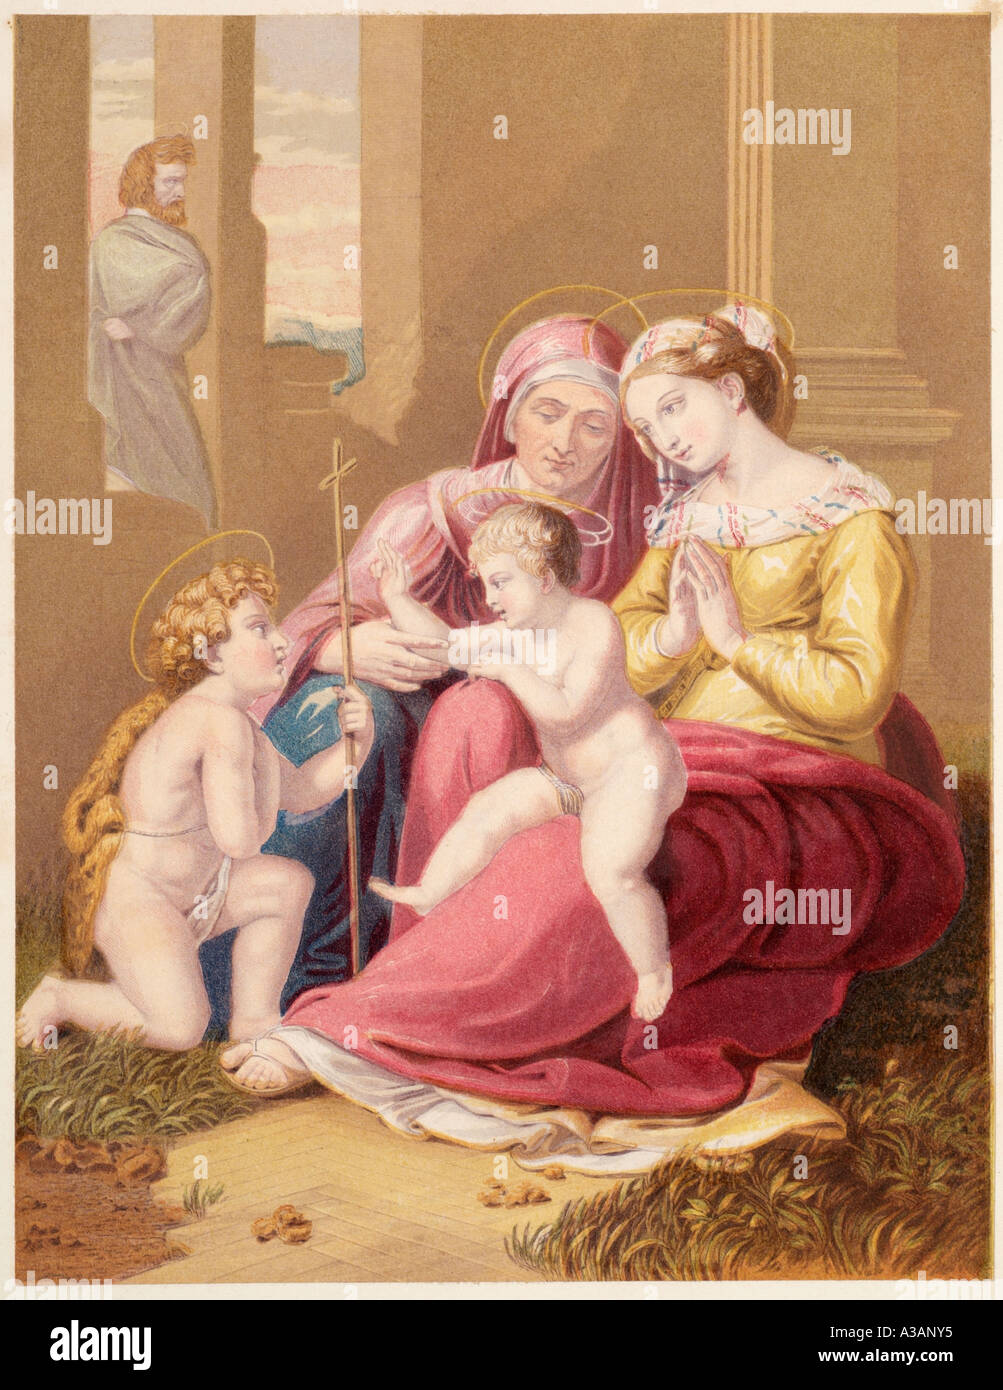 Baby Jesus Christ Mary Joseph oil colour adore worship divine New Testament bible biblical story preach holy Christian religion - Stock Image